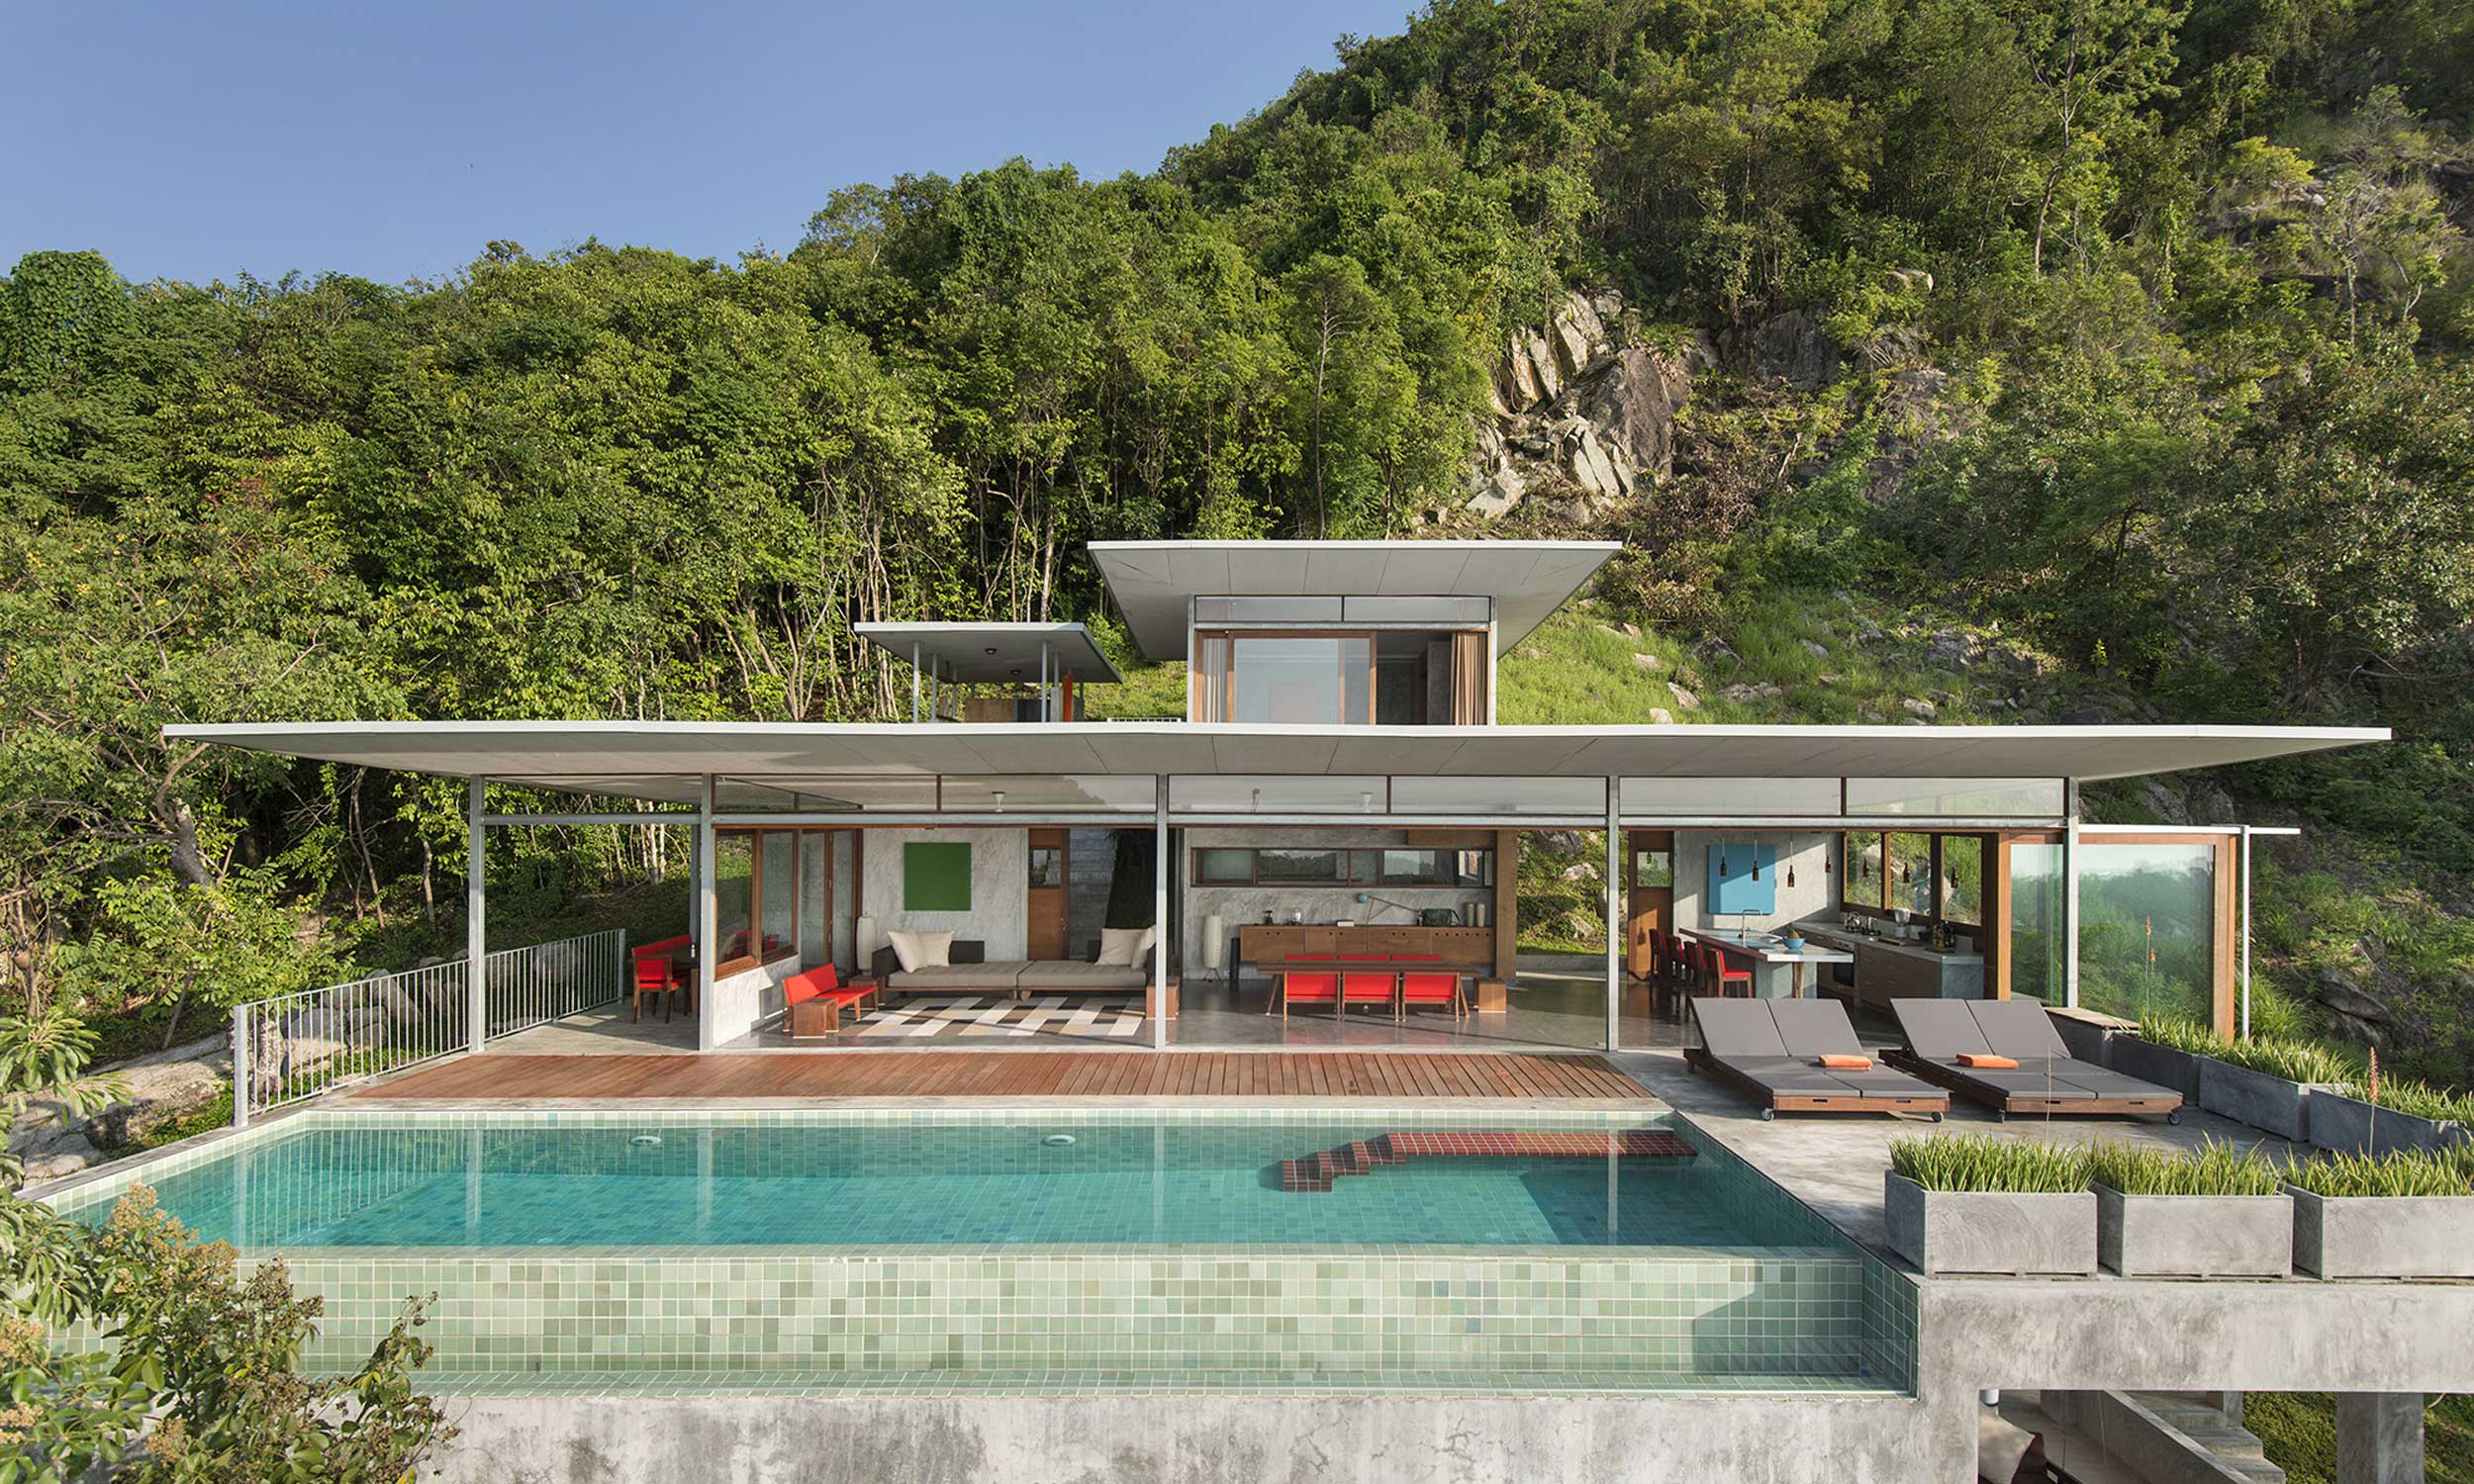 the naked house - Houses for Rent in Ko Samui, จั